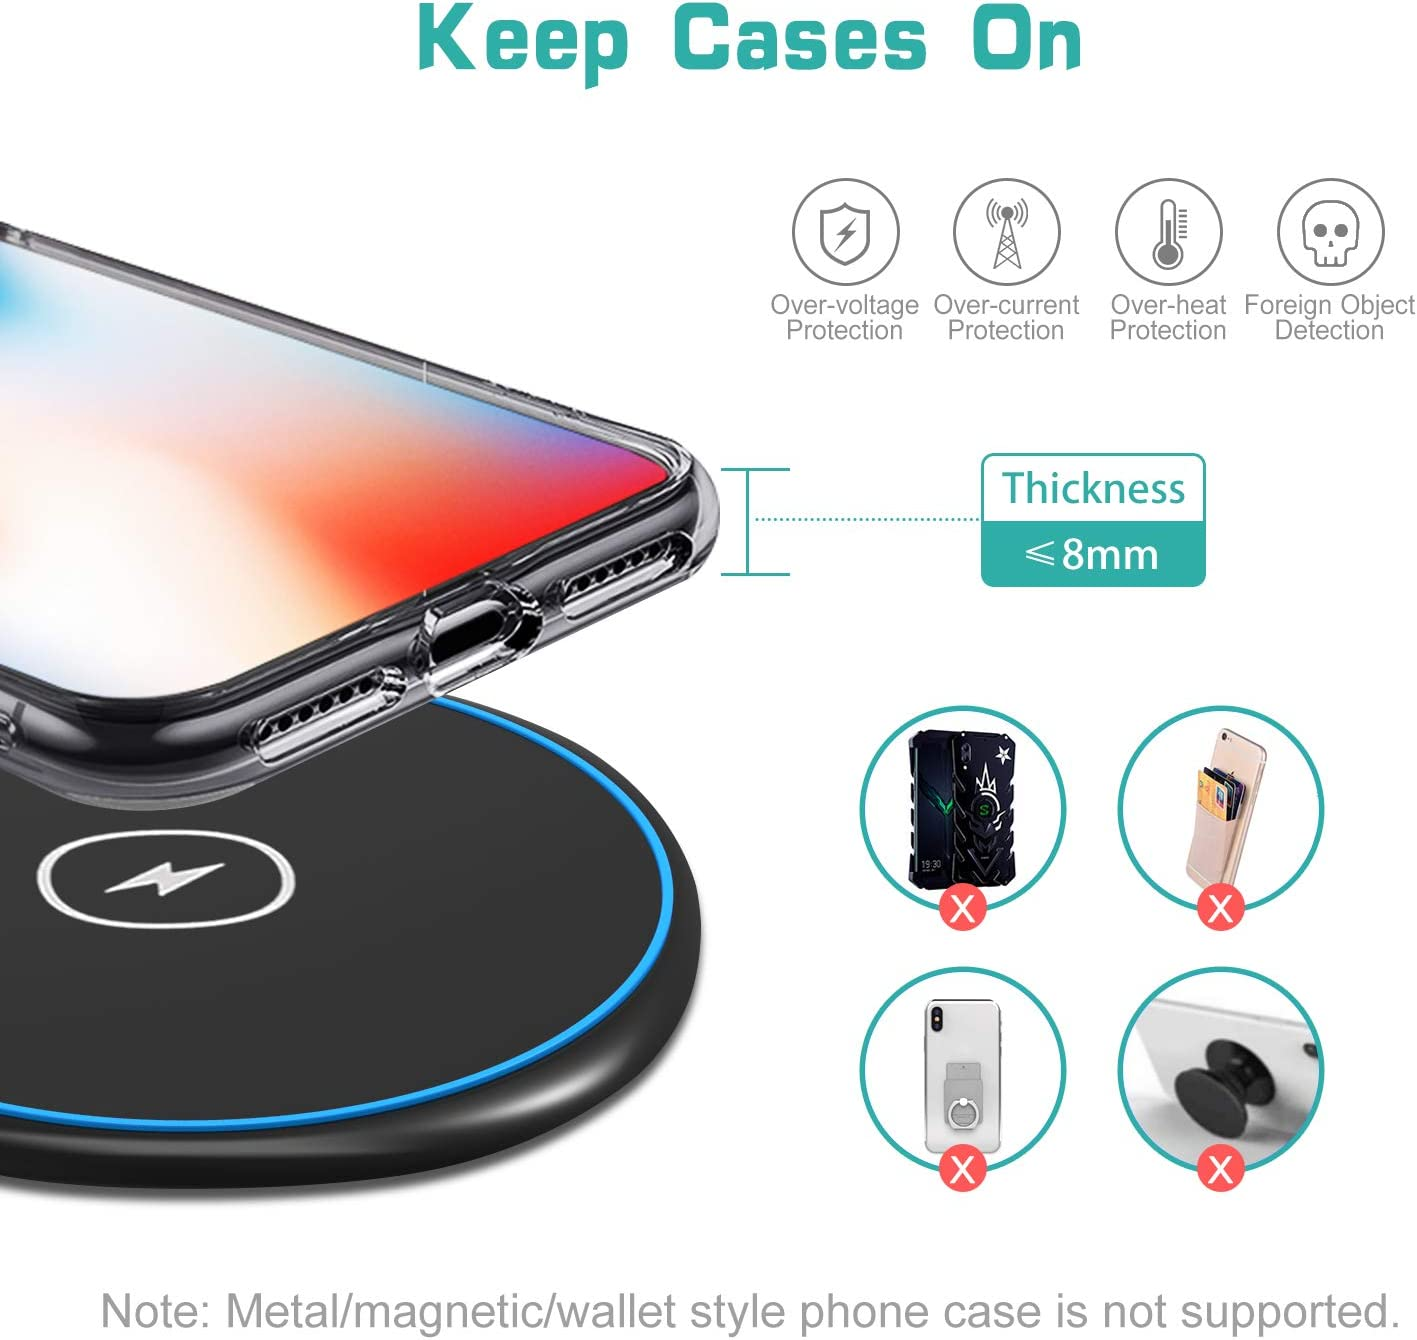 ELEGIANT 10W Wireless Charging Pad Compatible with iPhone 11//11Pro//11 Pro Max//XS MAX//XR//XS//X Wireless Charger Samsung Galaxy S20//S20Plus//S20ultra//S10//S10Plus//S10e//Note 10 and All Qi-Enabled Devices